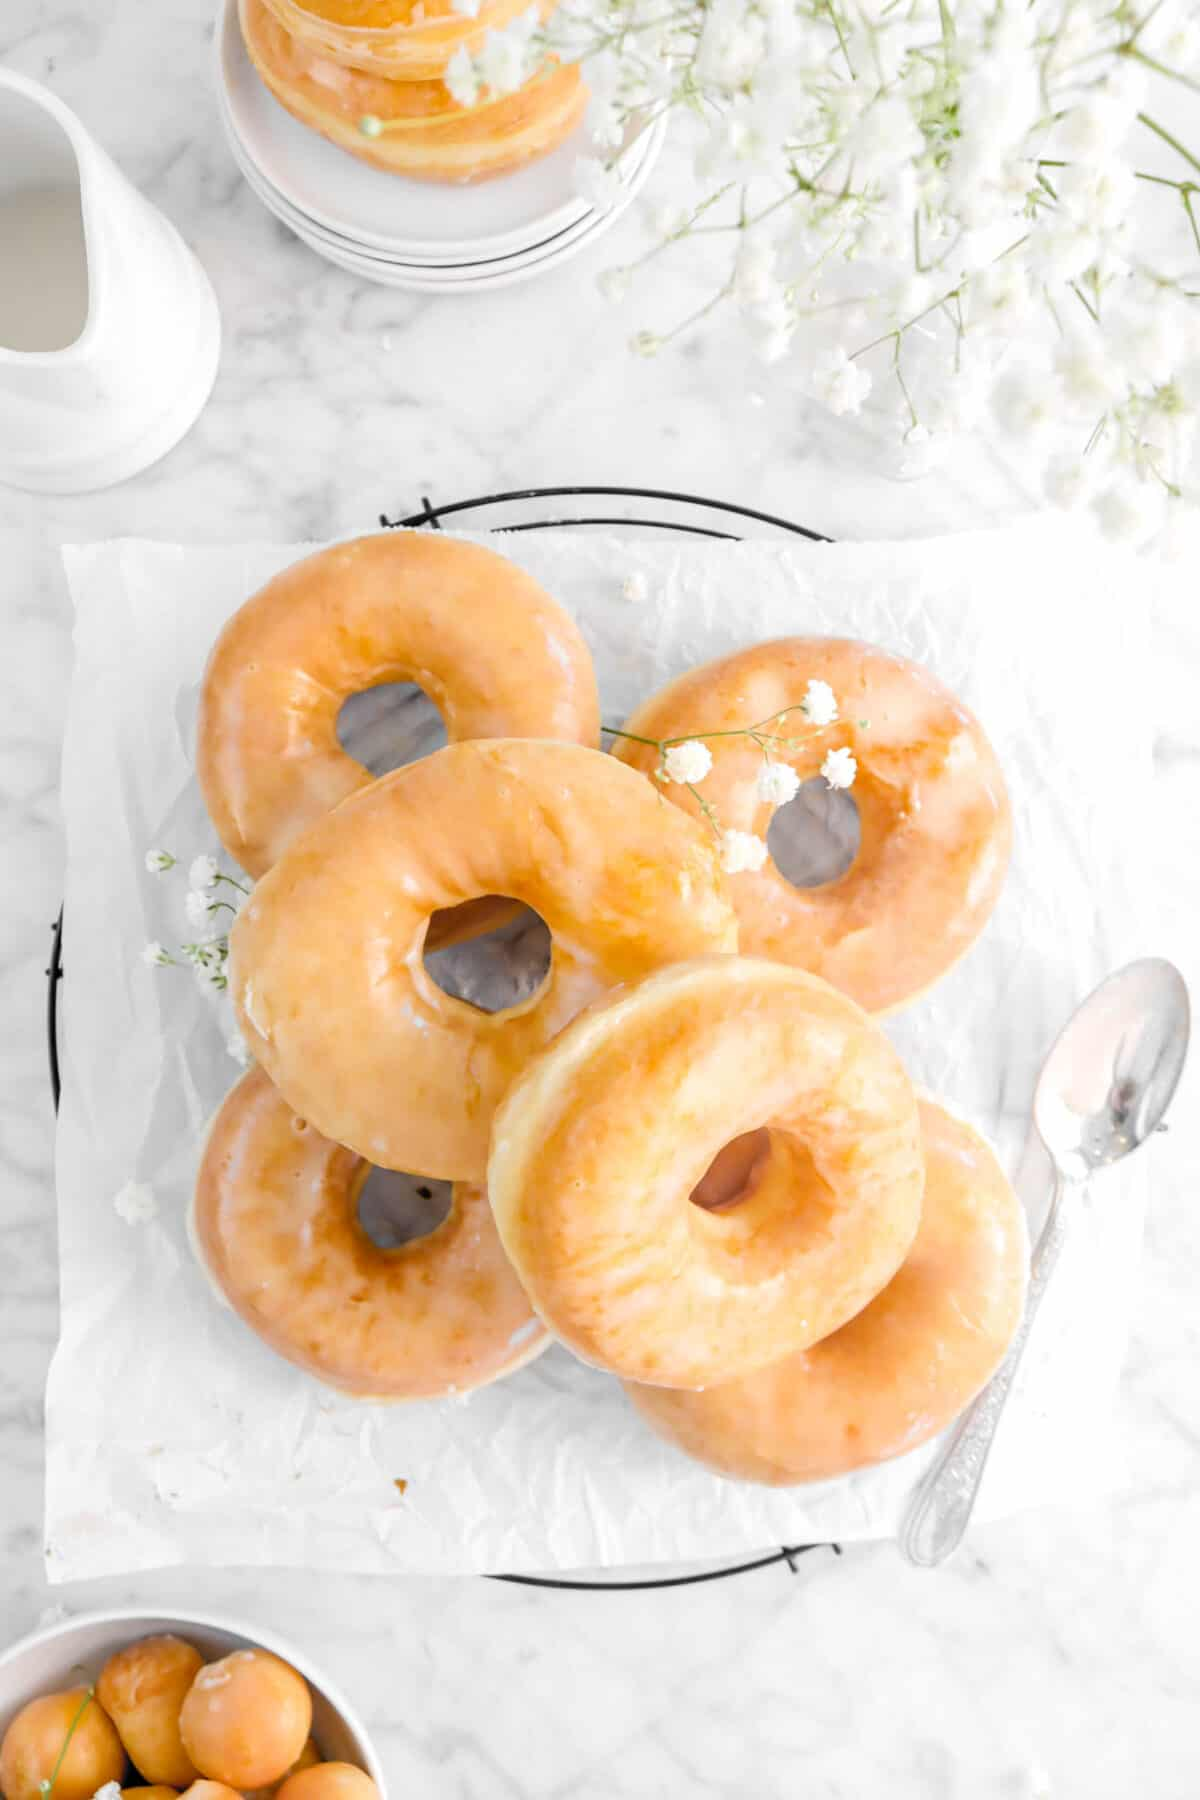 overhead shot of doughnuts on parchment paper with flowers and a spoon